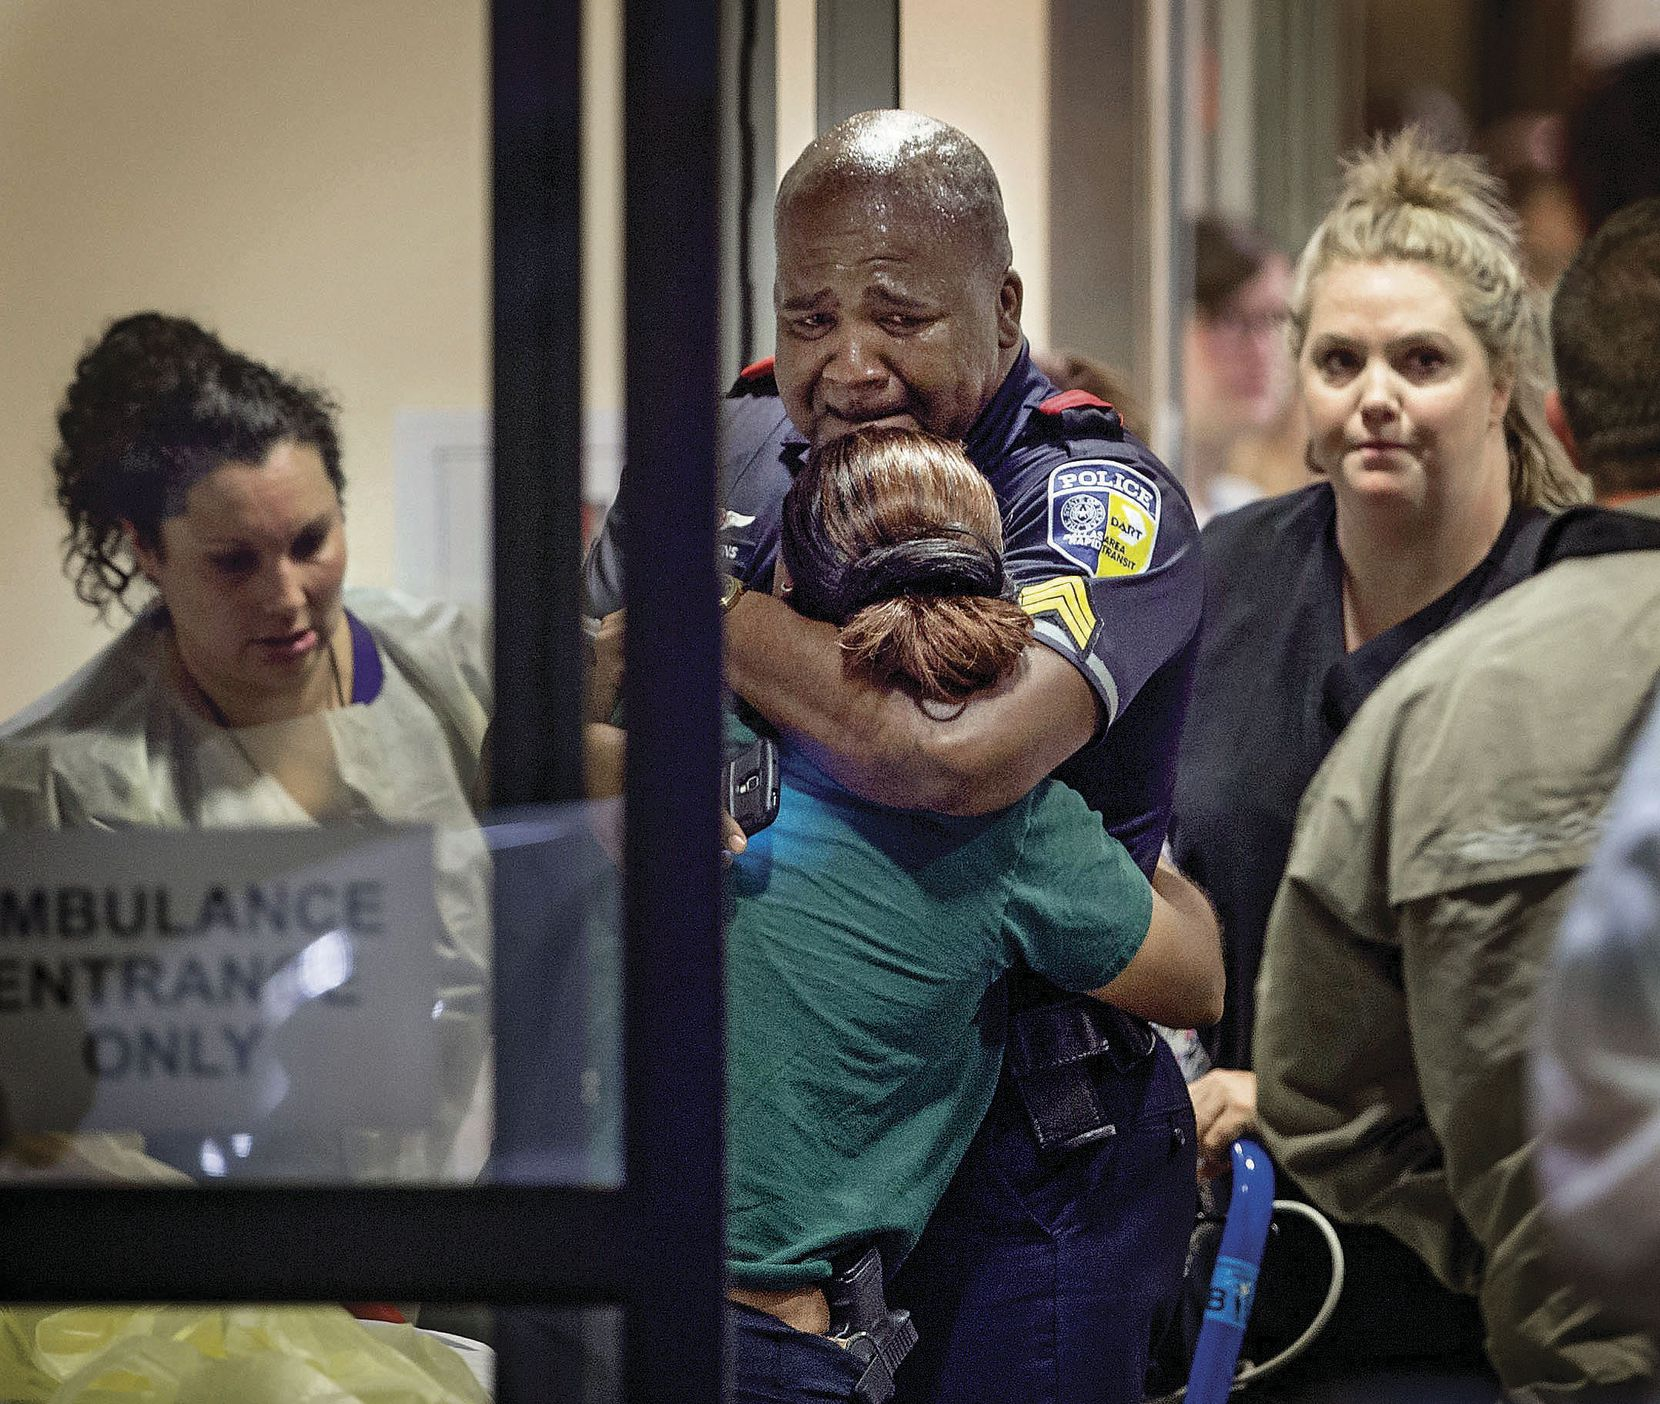 A Dallas Area Rapid Transit police officer was comforted at the Baylor University Hospital emergency room entrance on July 7. One of his colleagues on the DART police force, 43-year-old Officer Brent Thompson, was among those killed in the ambush. Thompson, a former Marine who had been with the department since 2009, was the first DART officer to be killed in the line of duty.